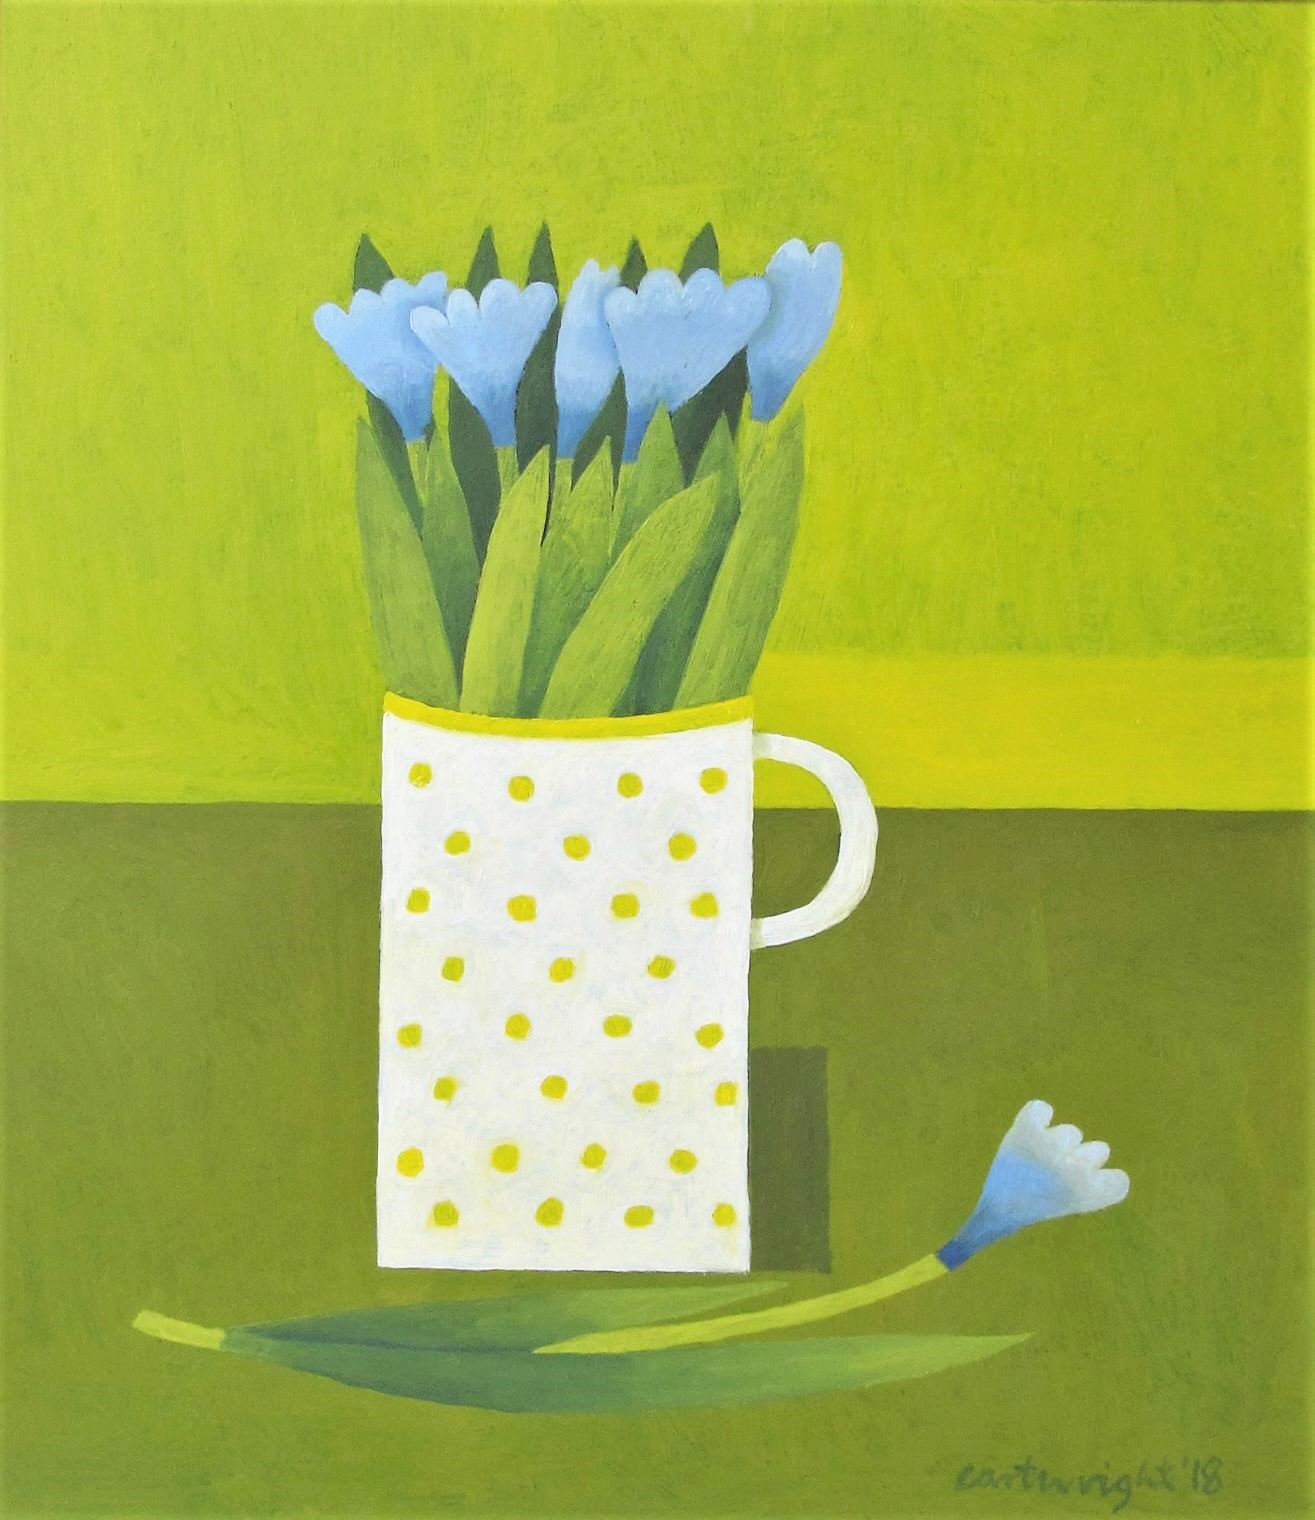 Blue flowers and yellow polka dot mug against a green background. Reg Cartwright oil painting 2020